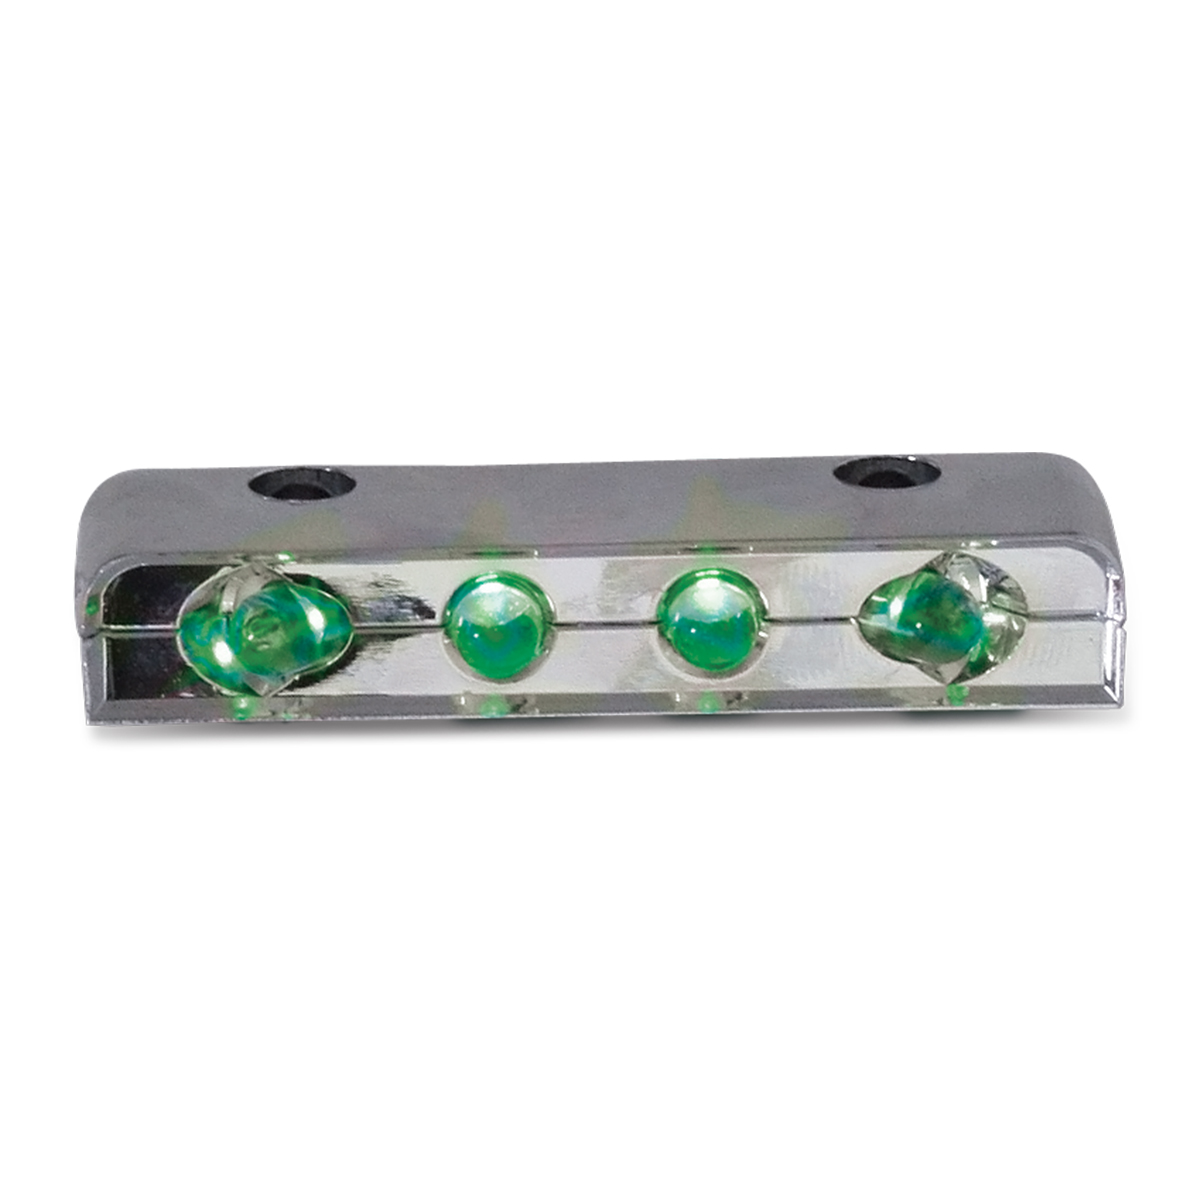 77102 Green 4 LED Step Light